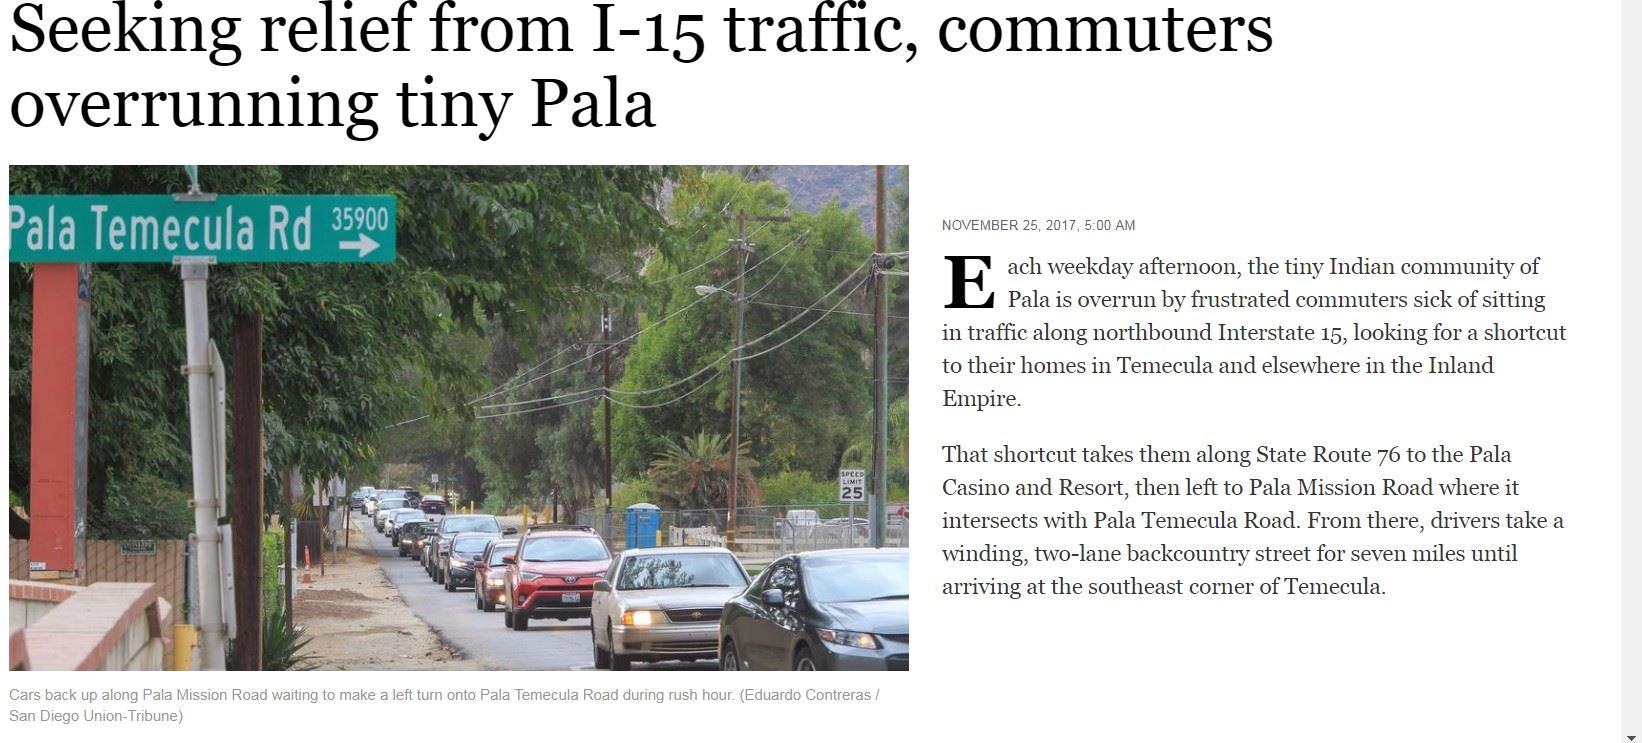 PALA OVERRUN WITH I-15 TRAFFIC